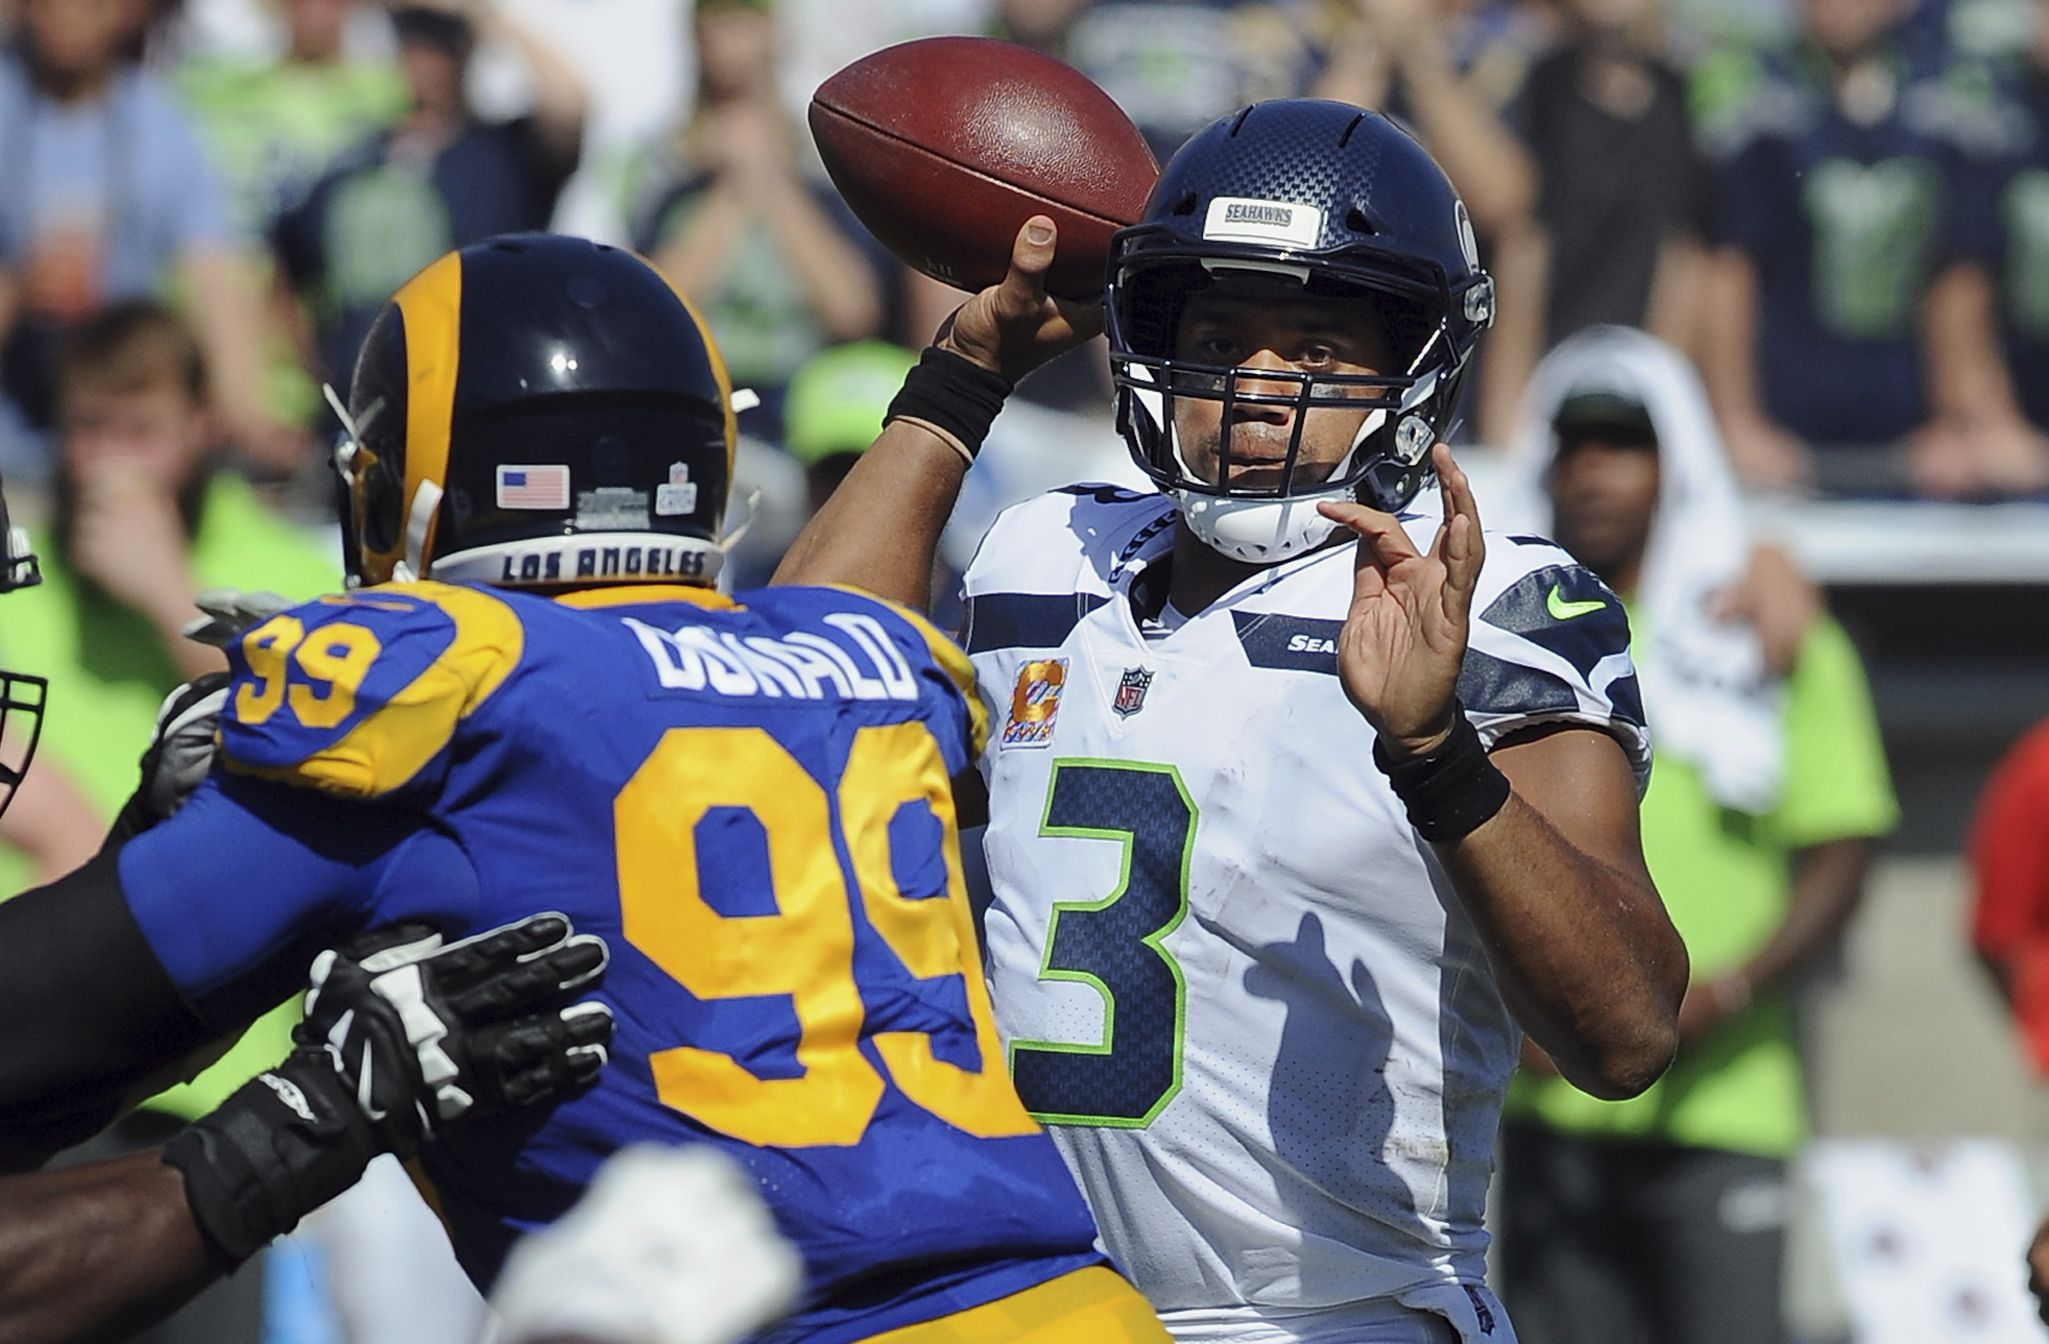 Seattle Seahawks Vs Los Angeles Rams Free Live Stream 11 15 20 How To Watch Nfl Games Time Channel Pennlive Com